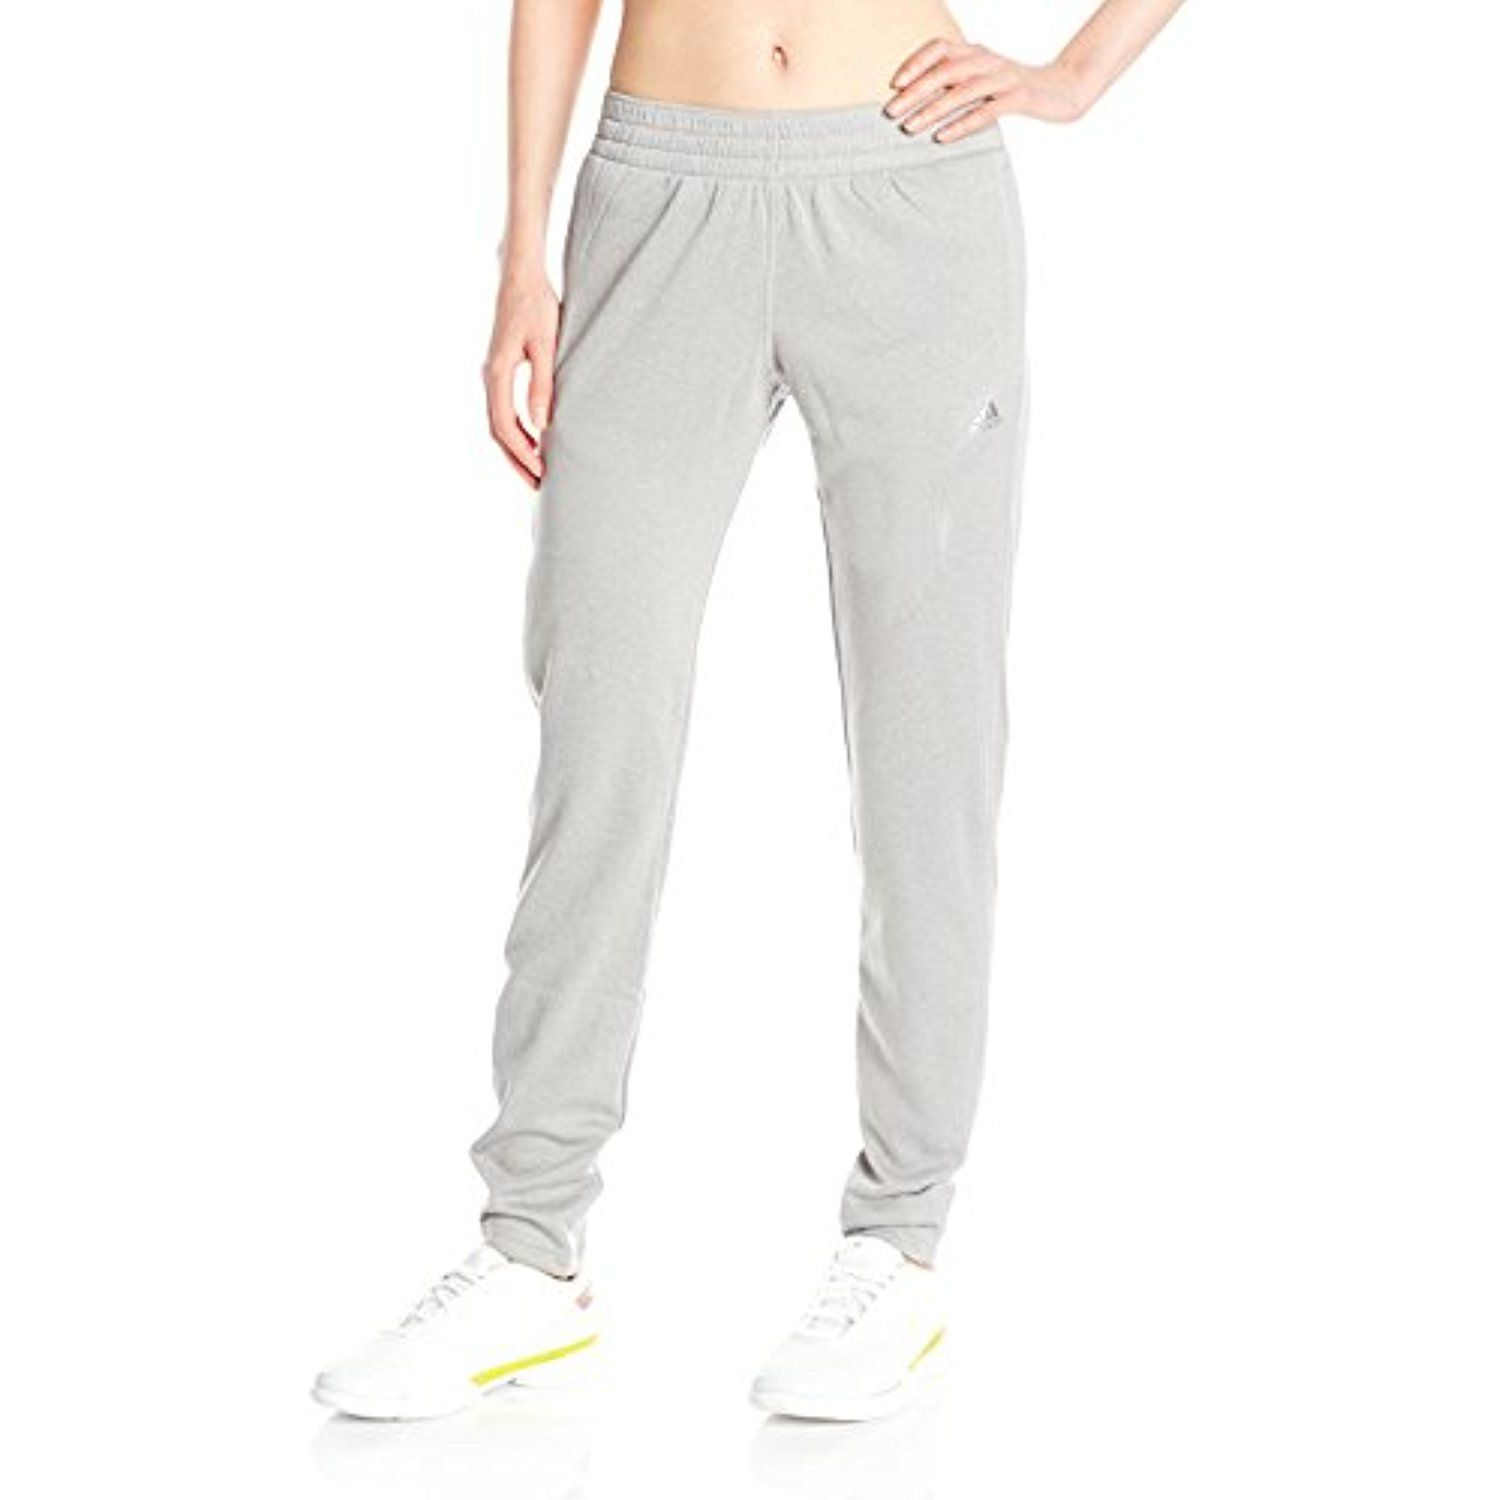 7d277a235a35 adidas Performance Women s Ultimate Fleece Tapered Pant -- Check out the  image by visiting the link. (This is an affiliate link)  Pants